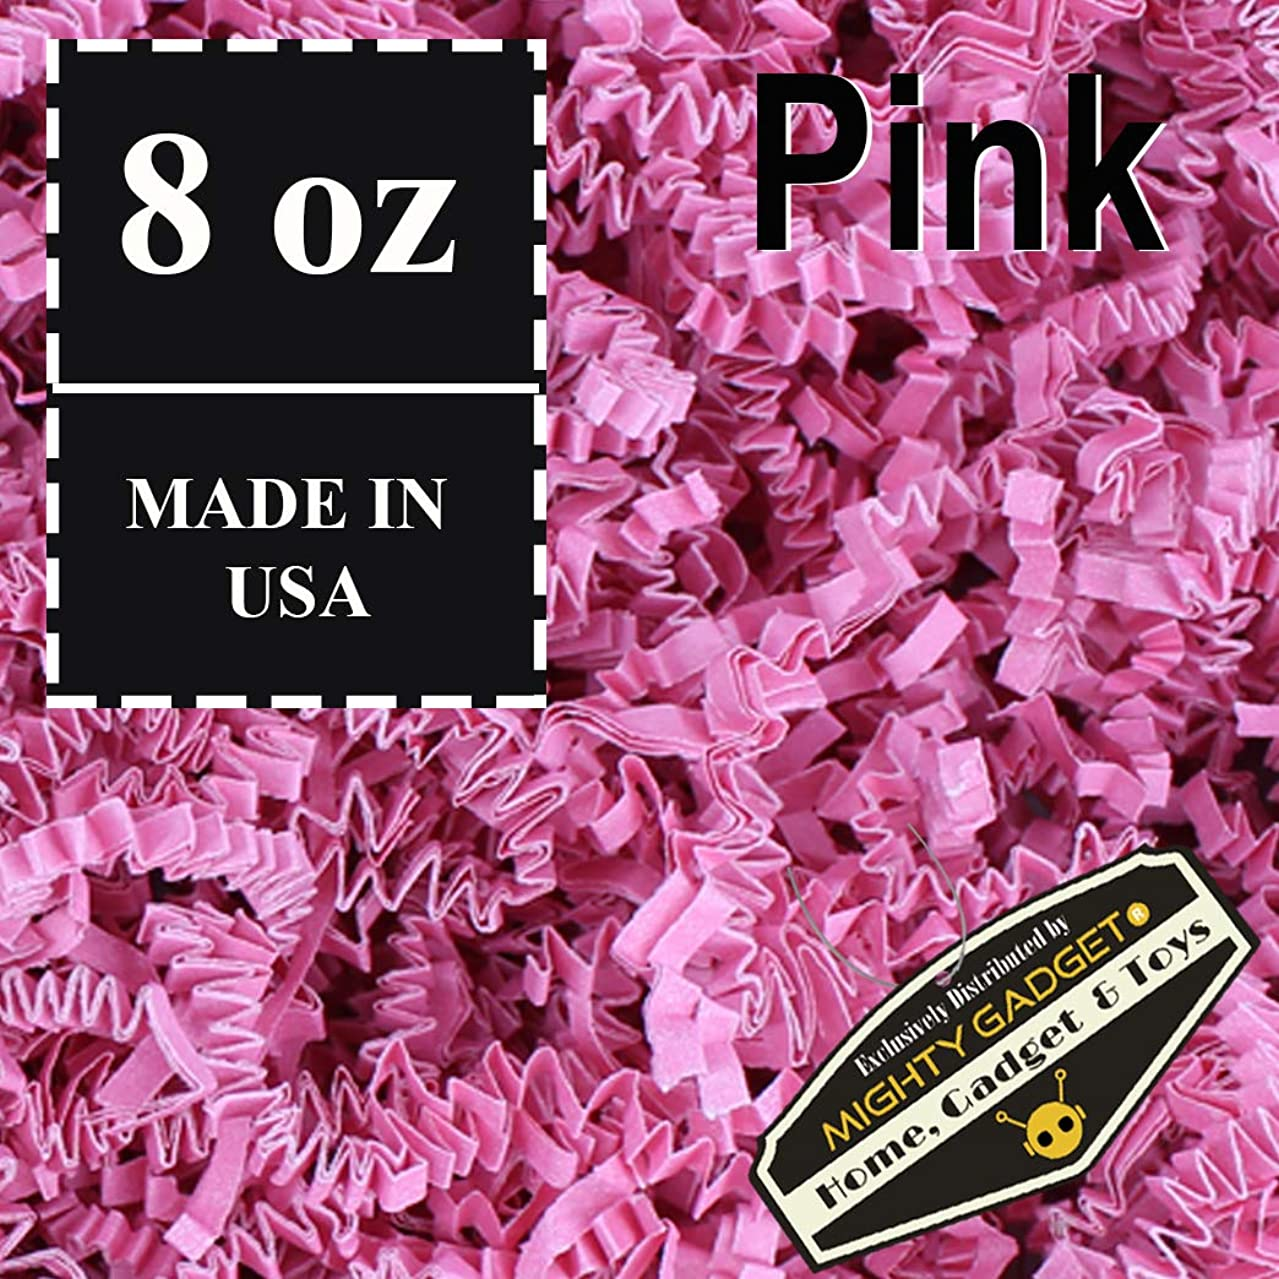 Mighty Gadget (R) 1/2 LB Pink Crinkle Cut Paper Shred Filler for Gift Wrapping & Basket Filling